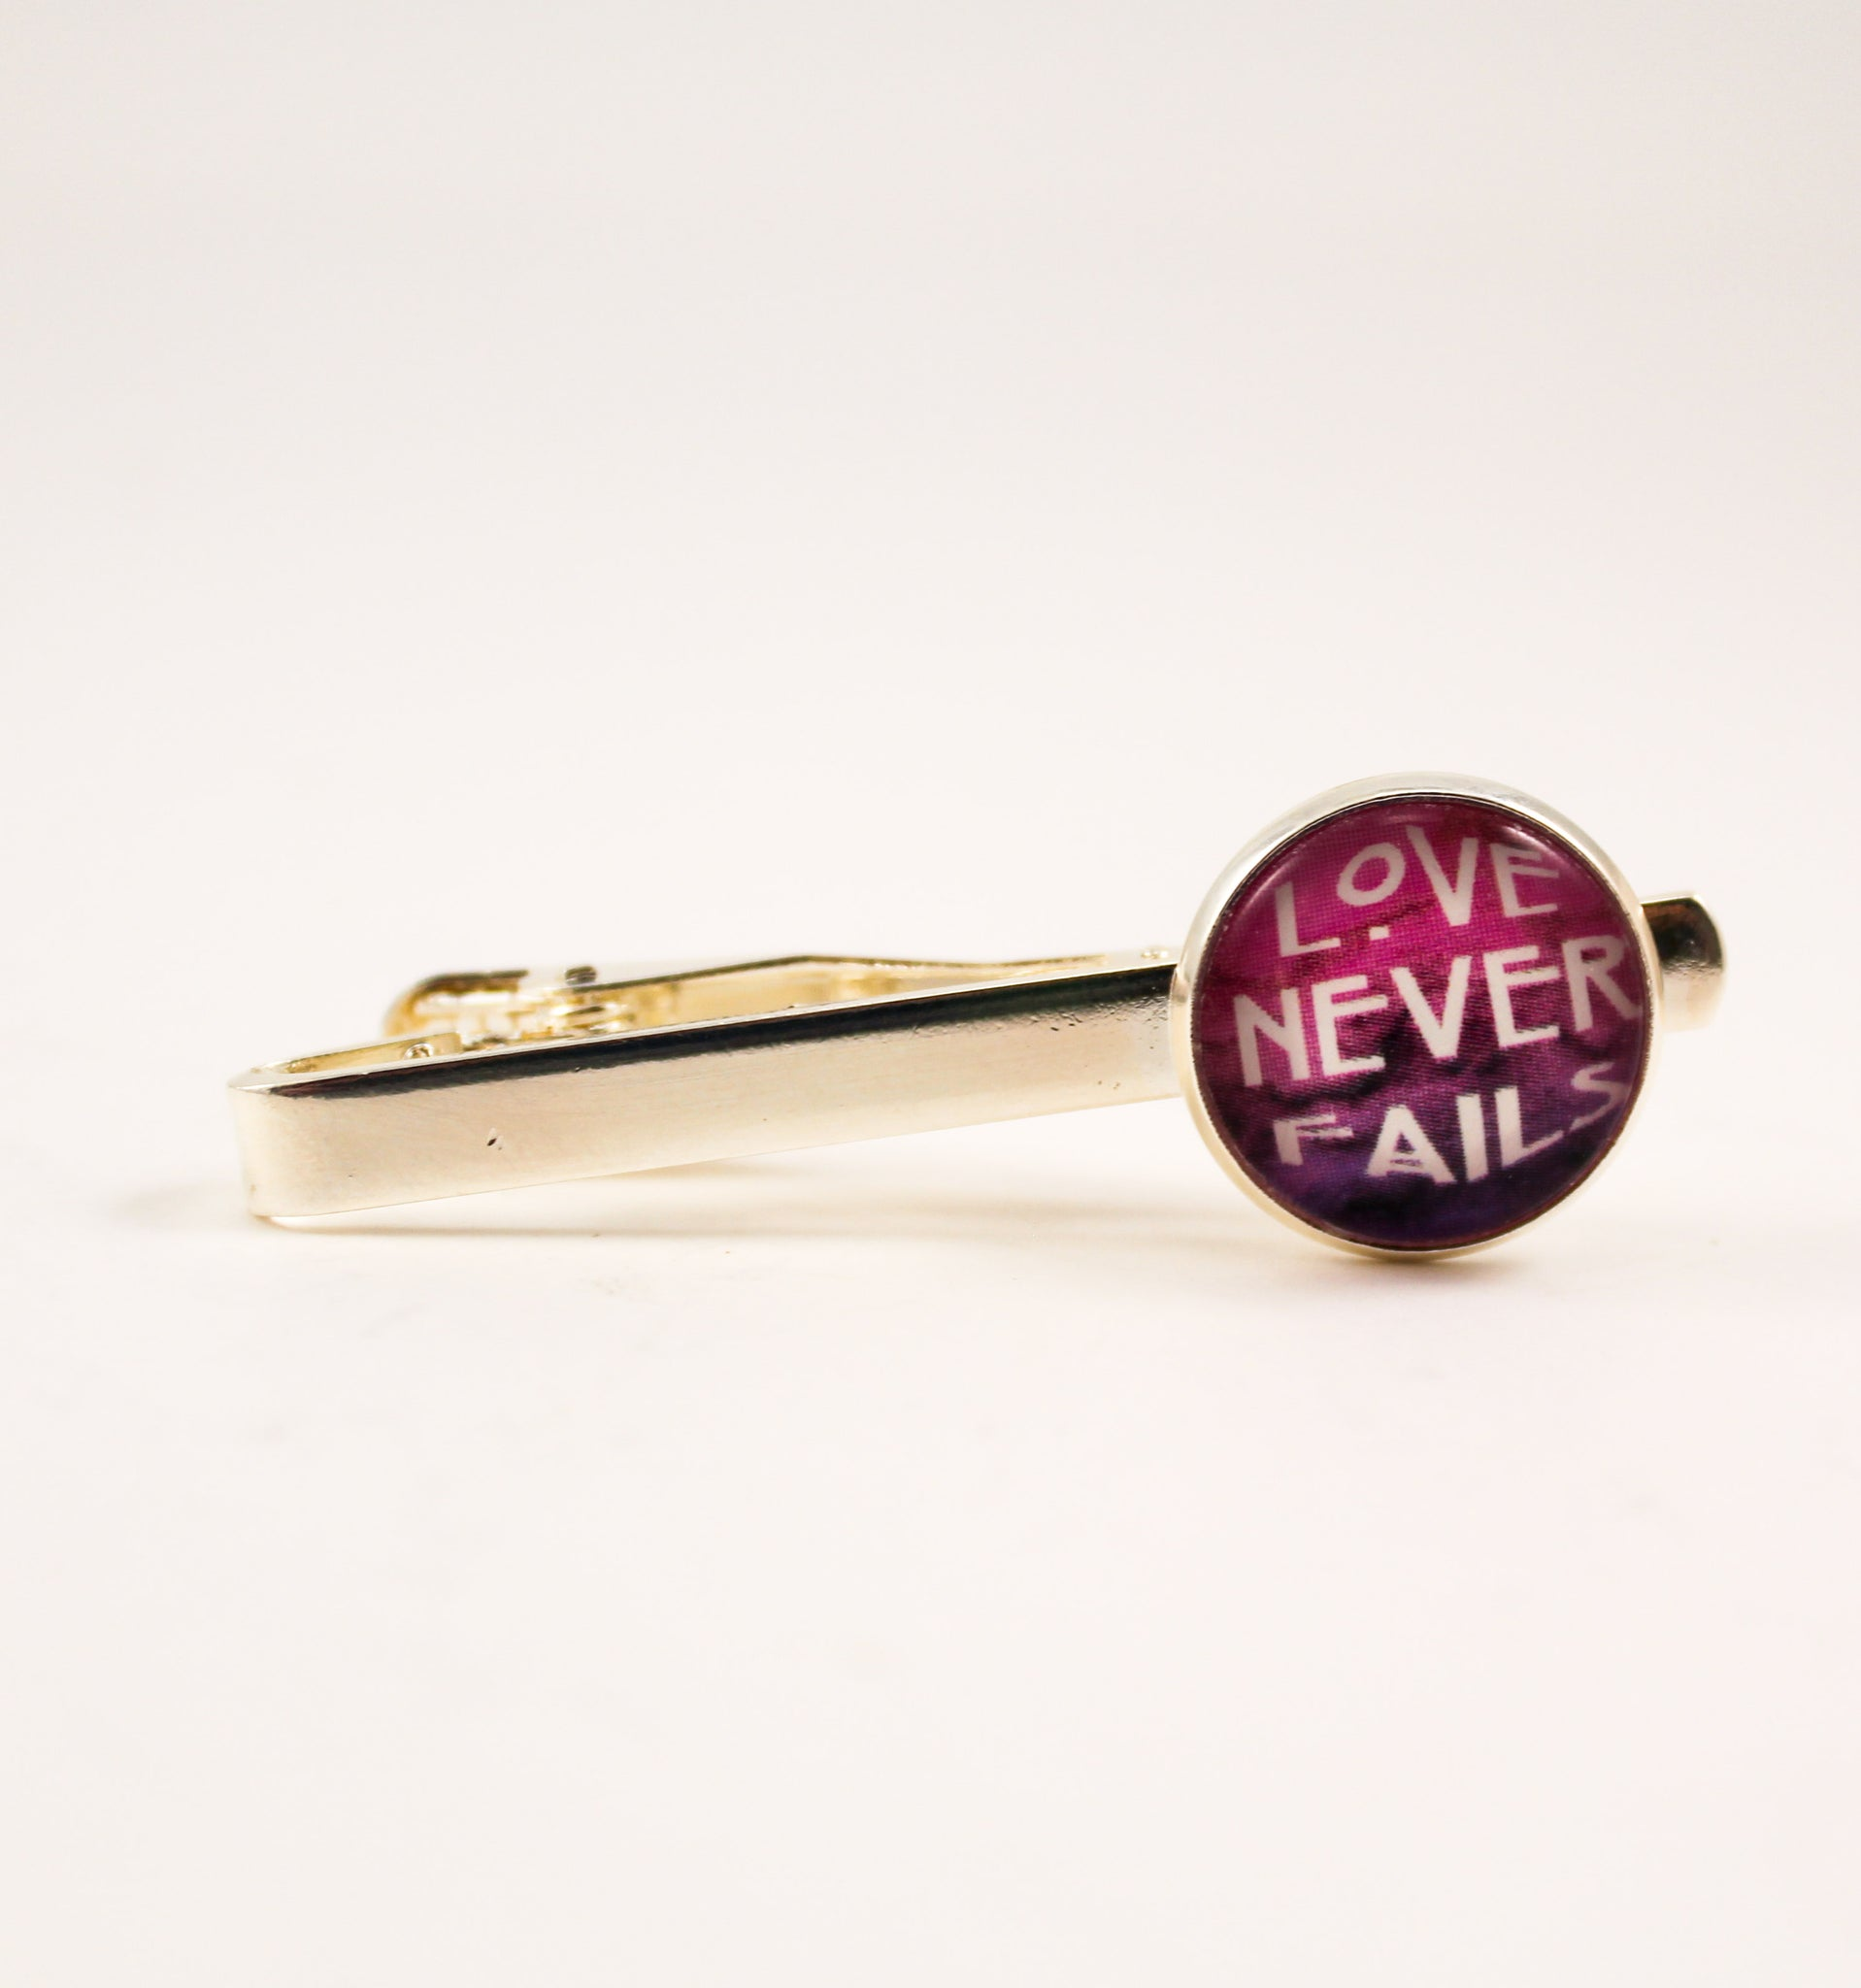 Love Never Fails Tie Bar/Tie Clip, Magenta